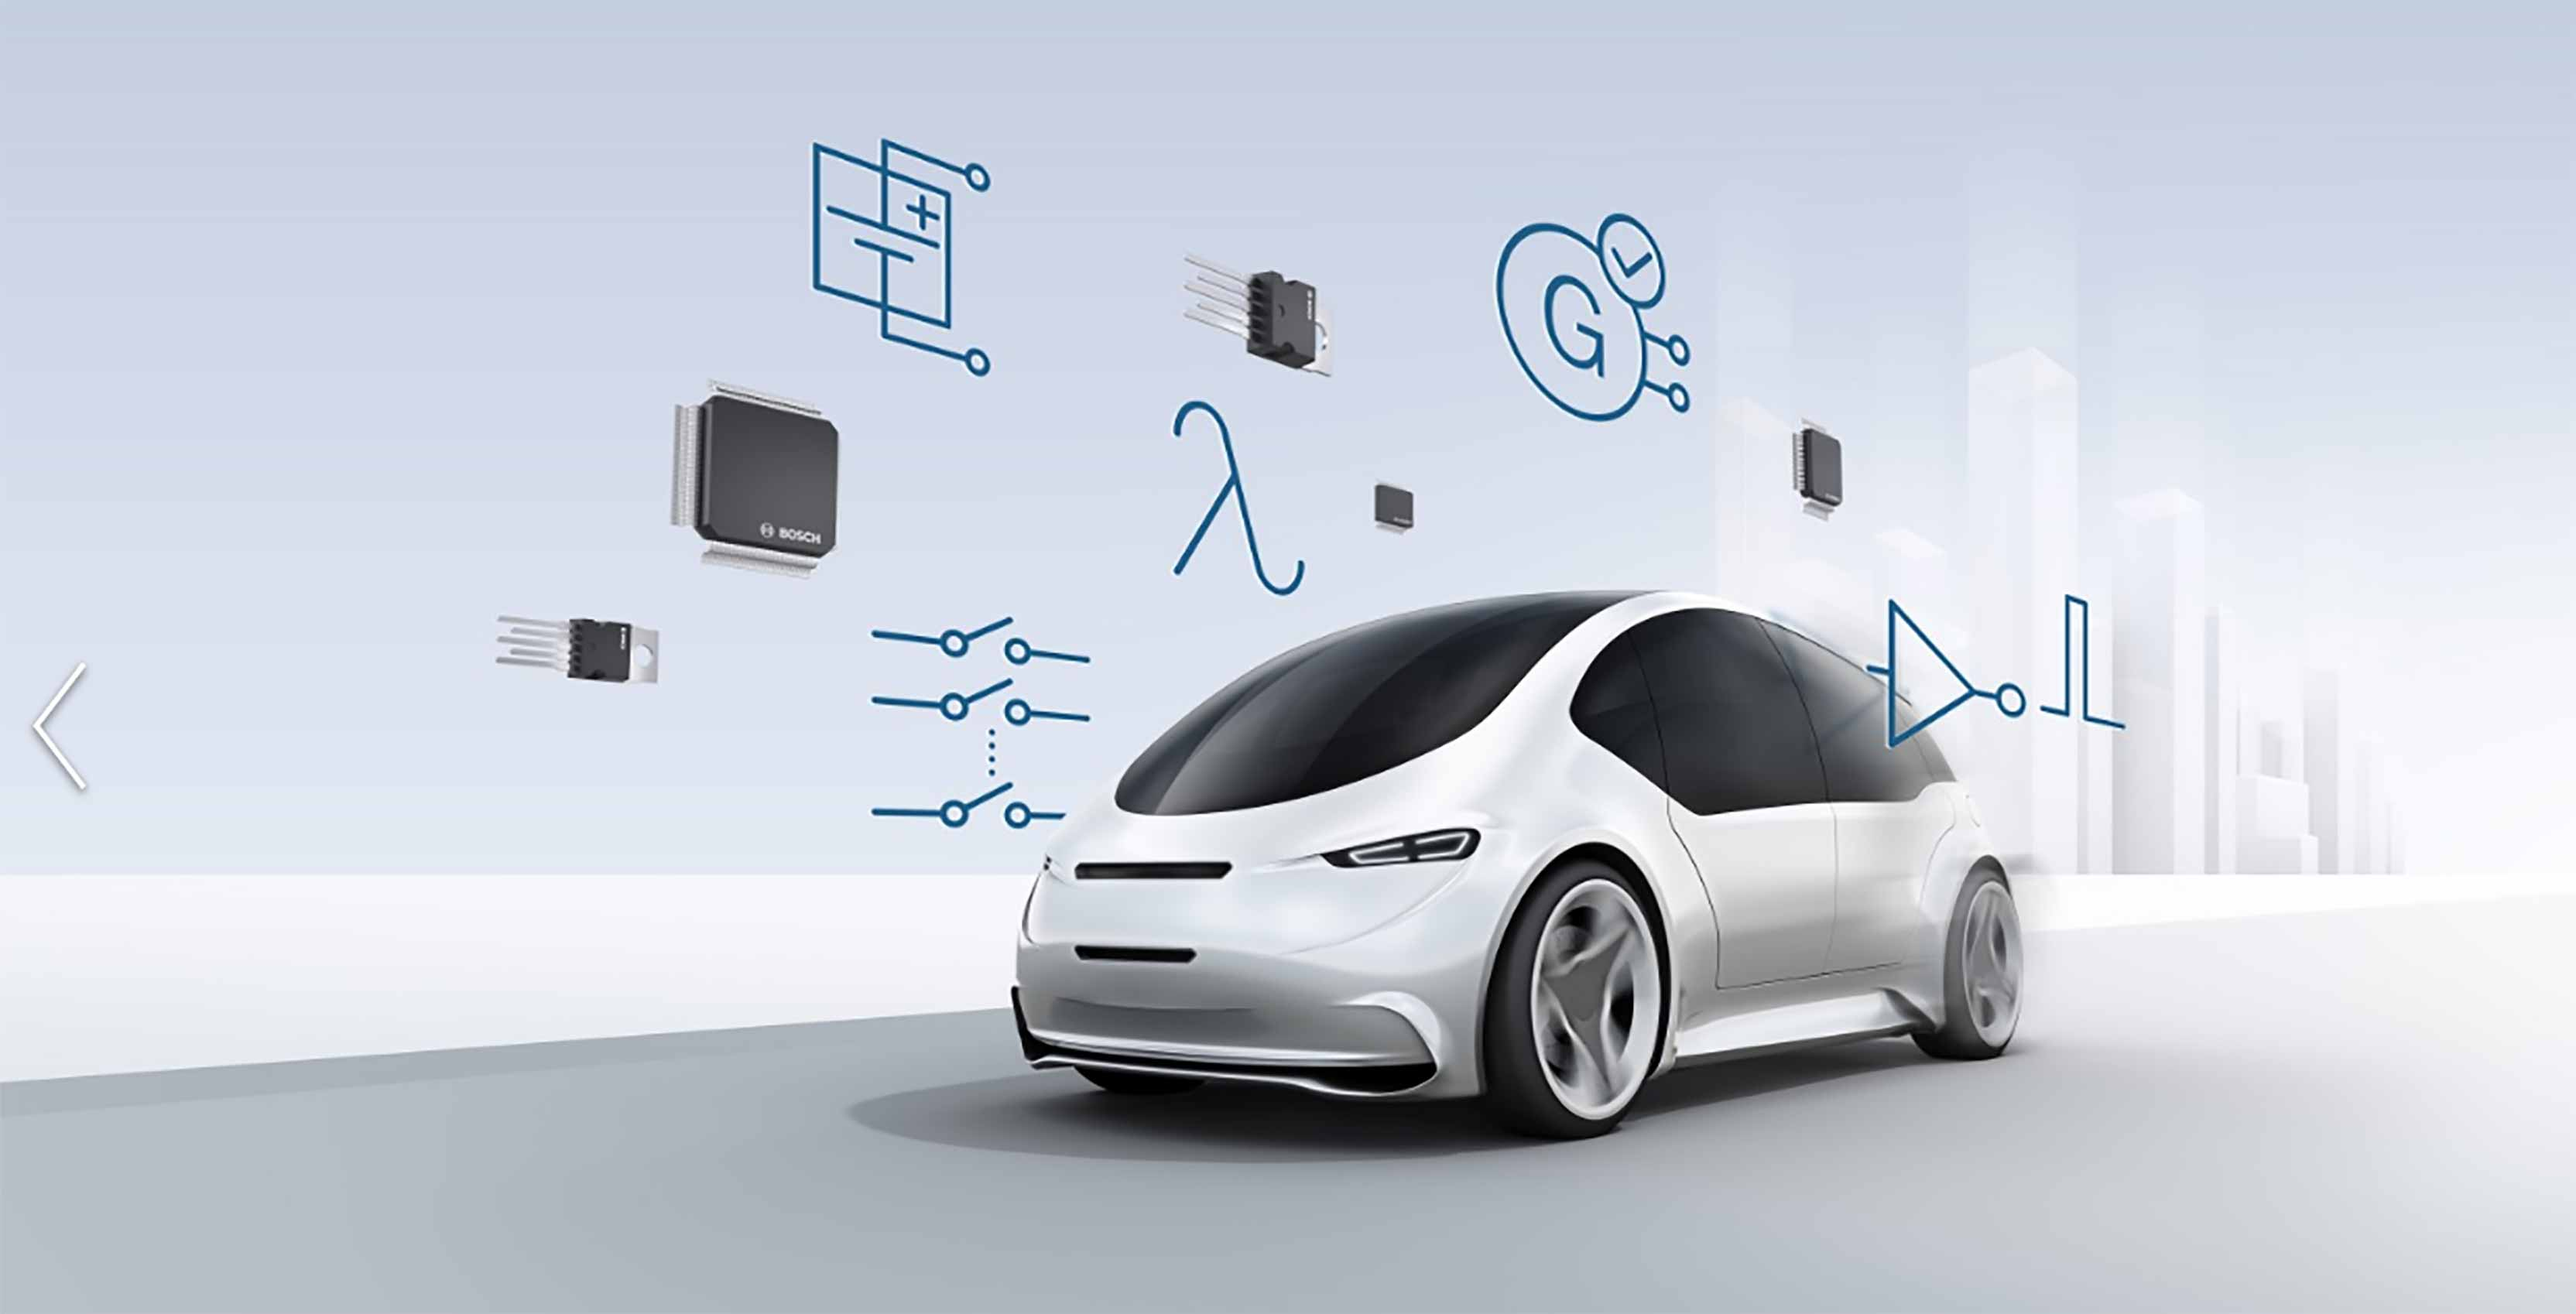 Bosch electric vehicle safety